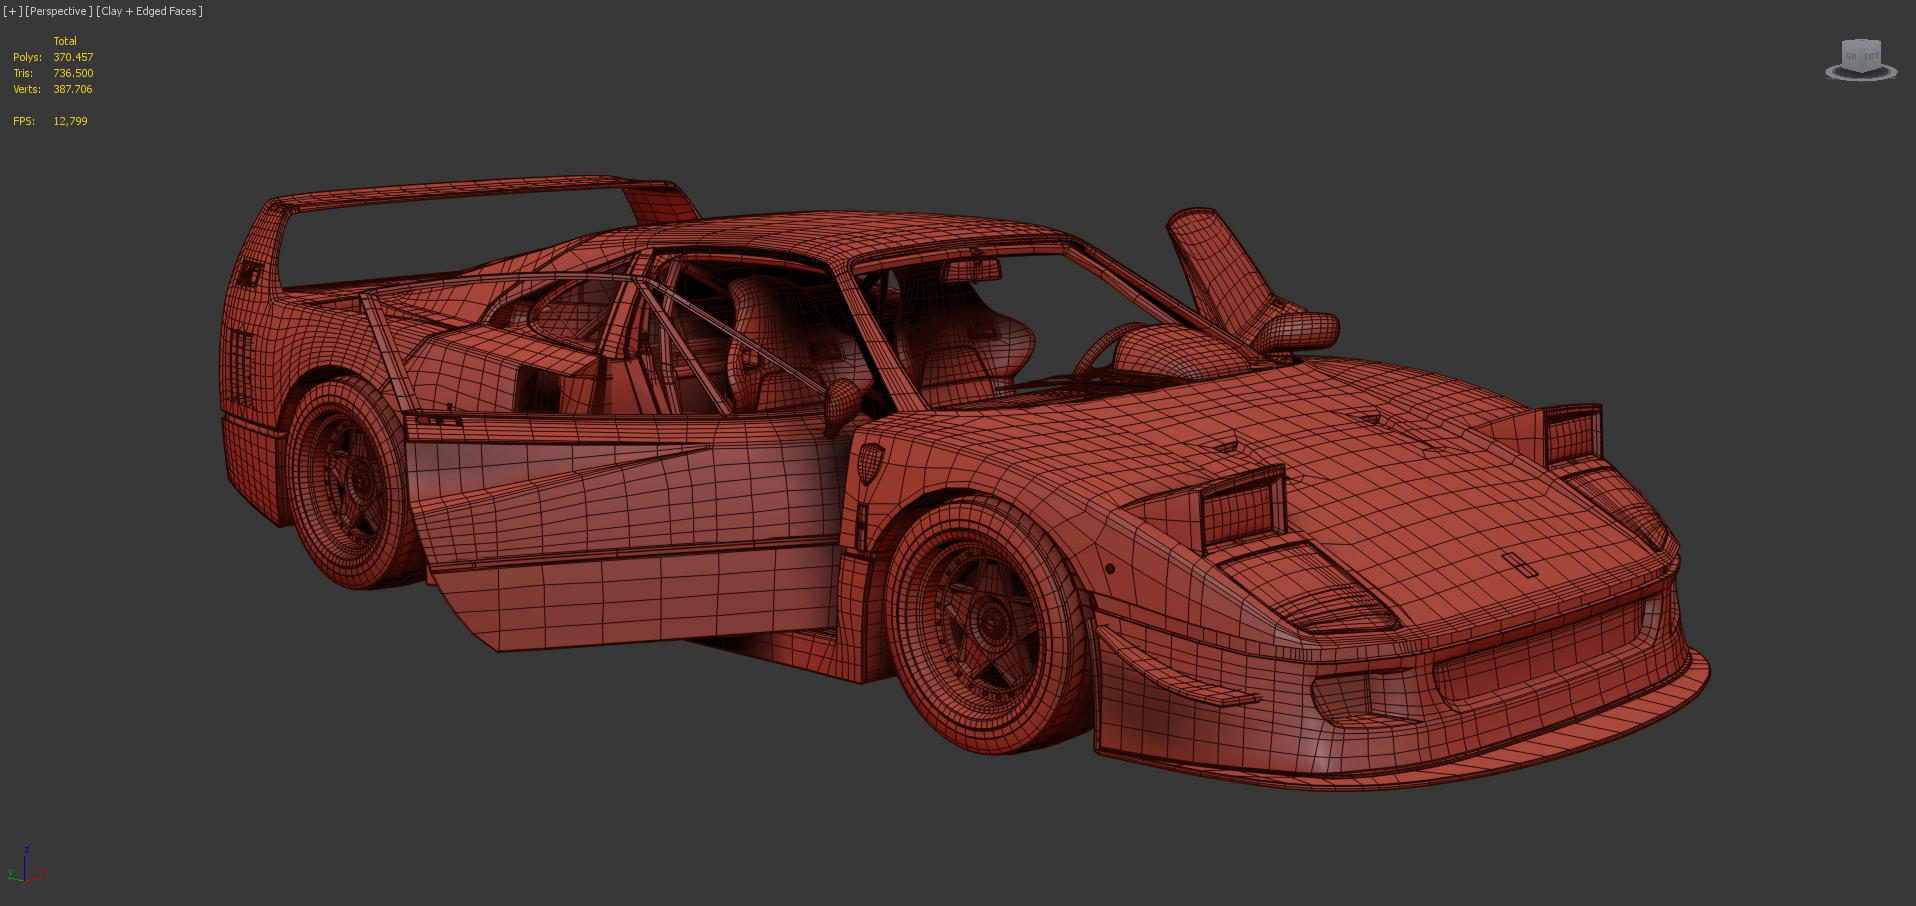 3D Model of the Ferrari F40 with Interior and High Poly